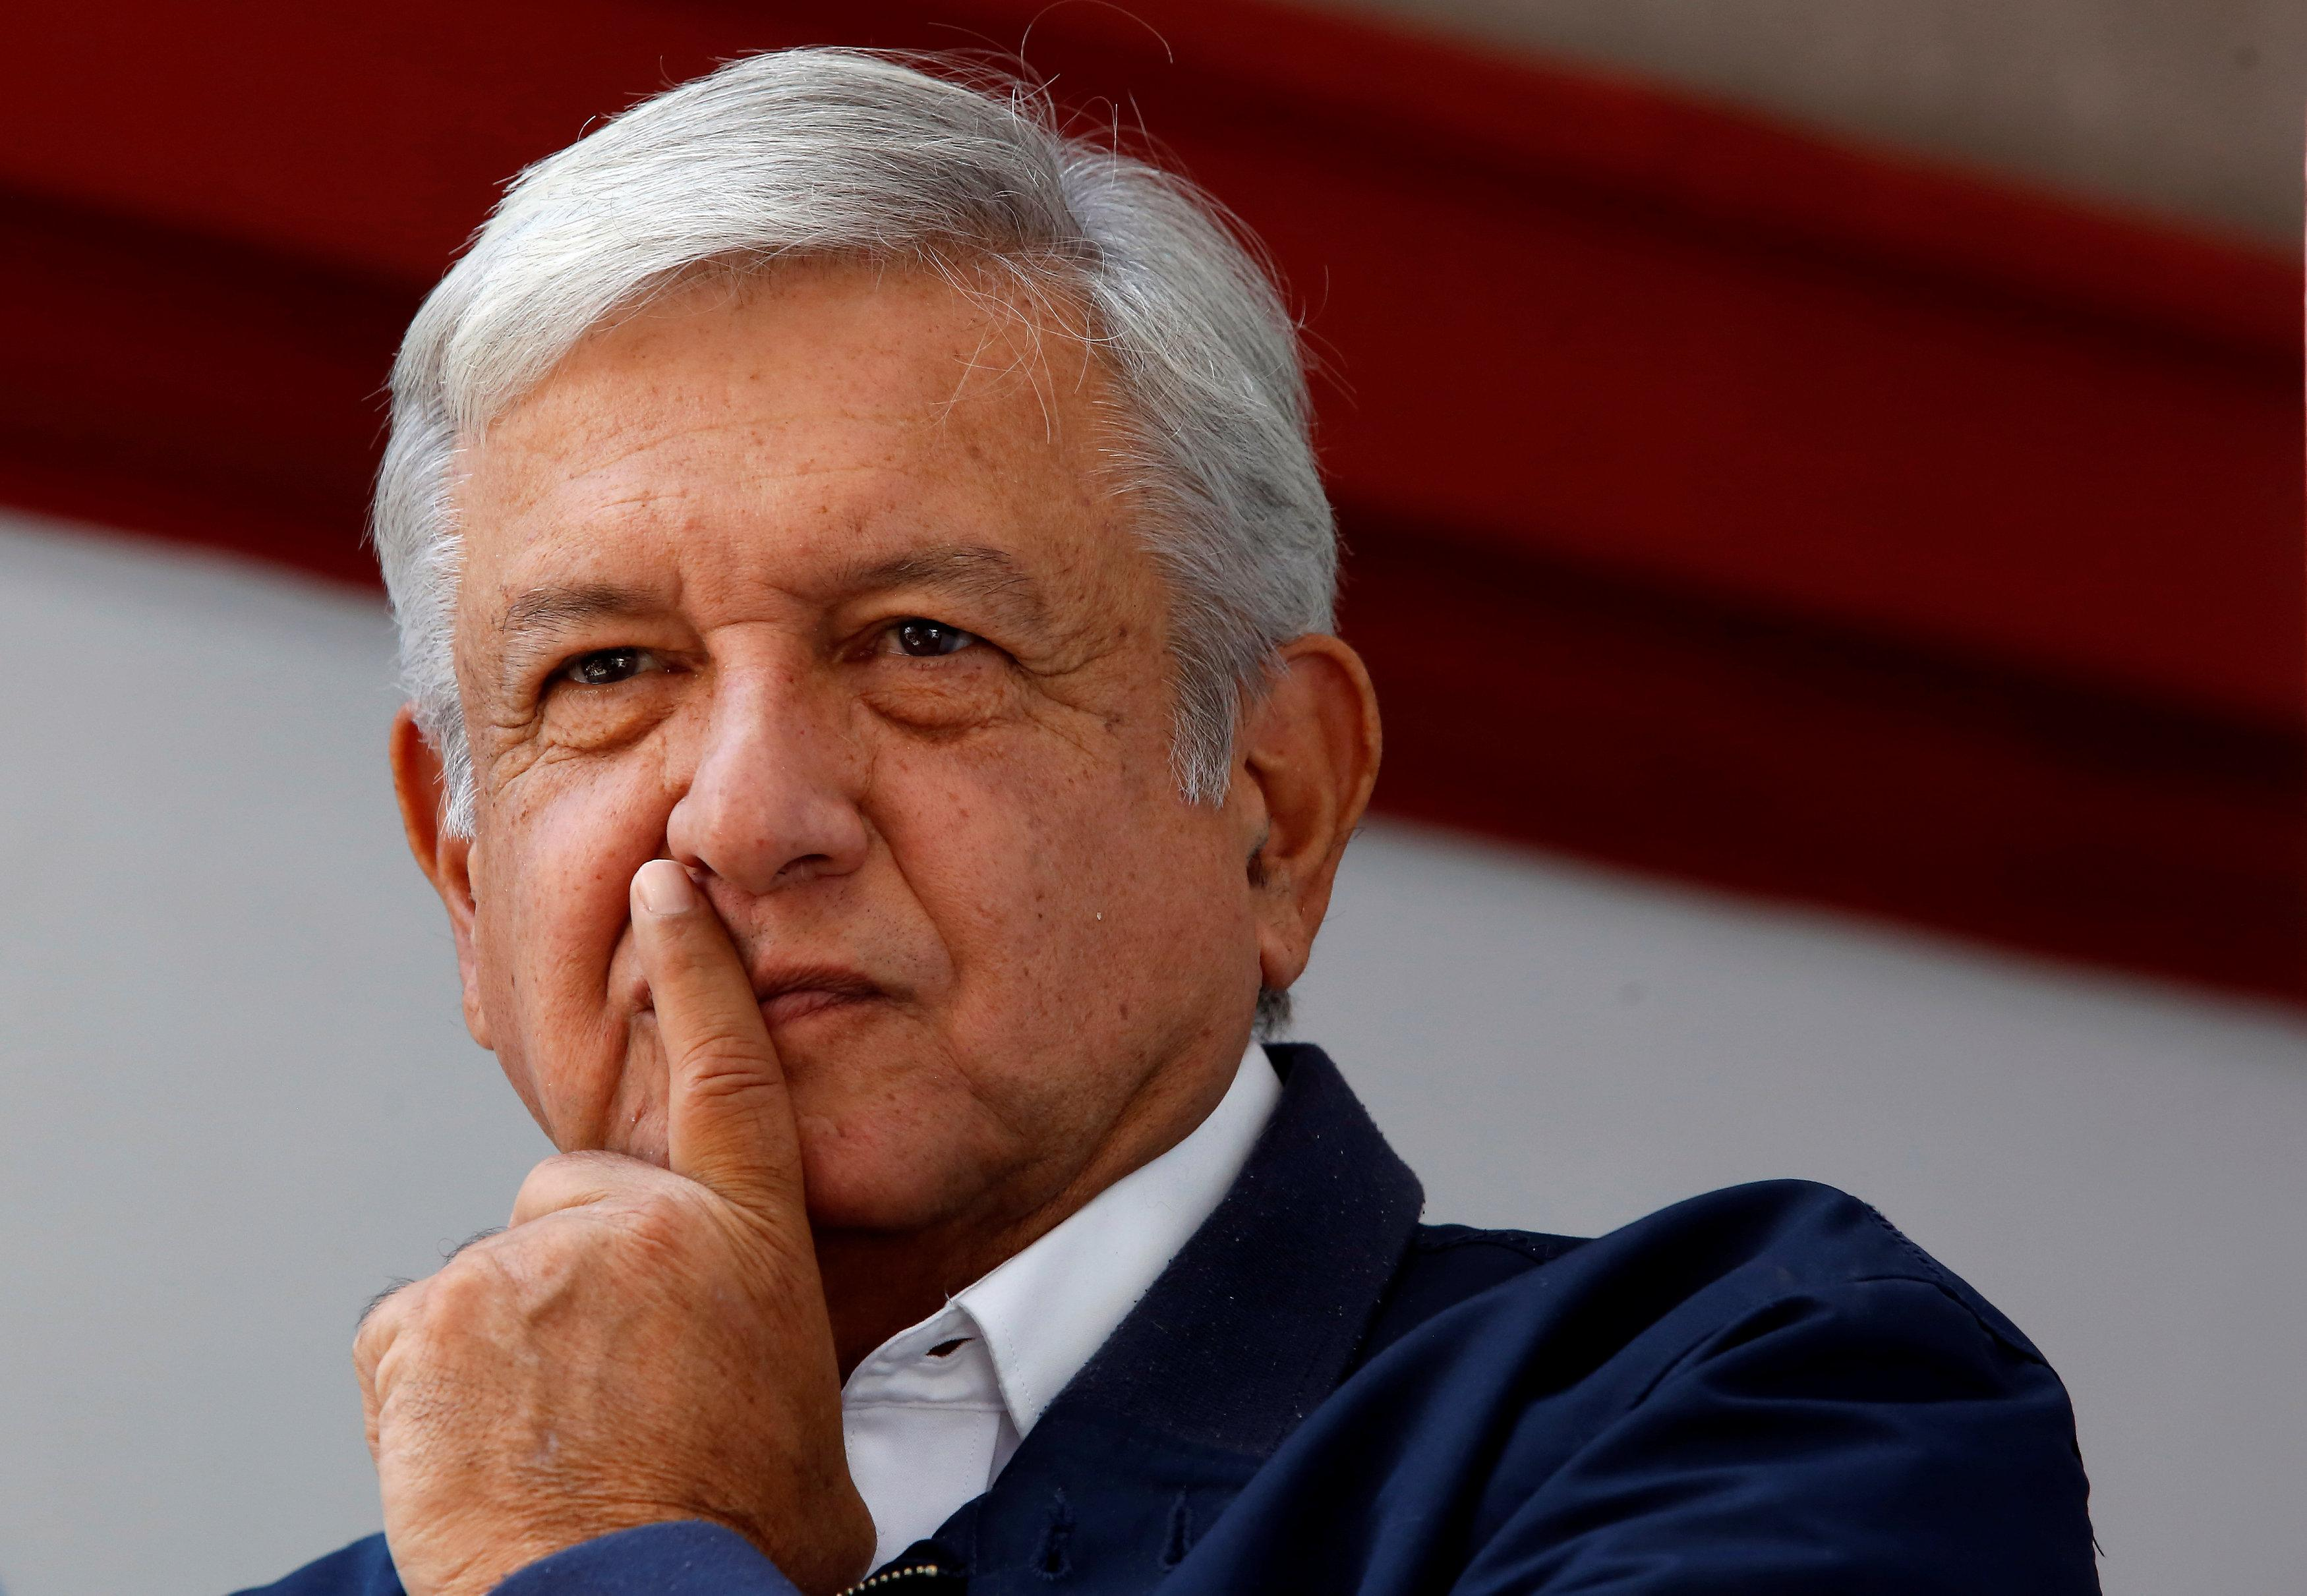 Mexico's president-elect Andres Manuel Lopez Obrador gestures during a news conference in Mexico City, Mexico July 22, 2018. Ginnette Riquelme